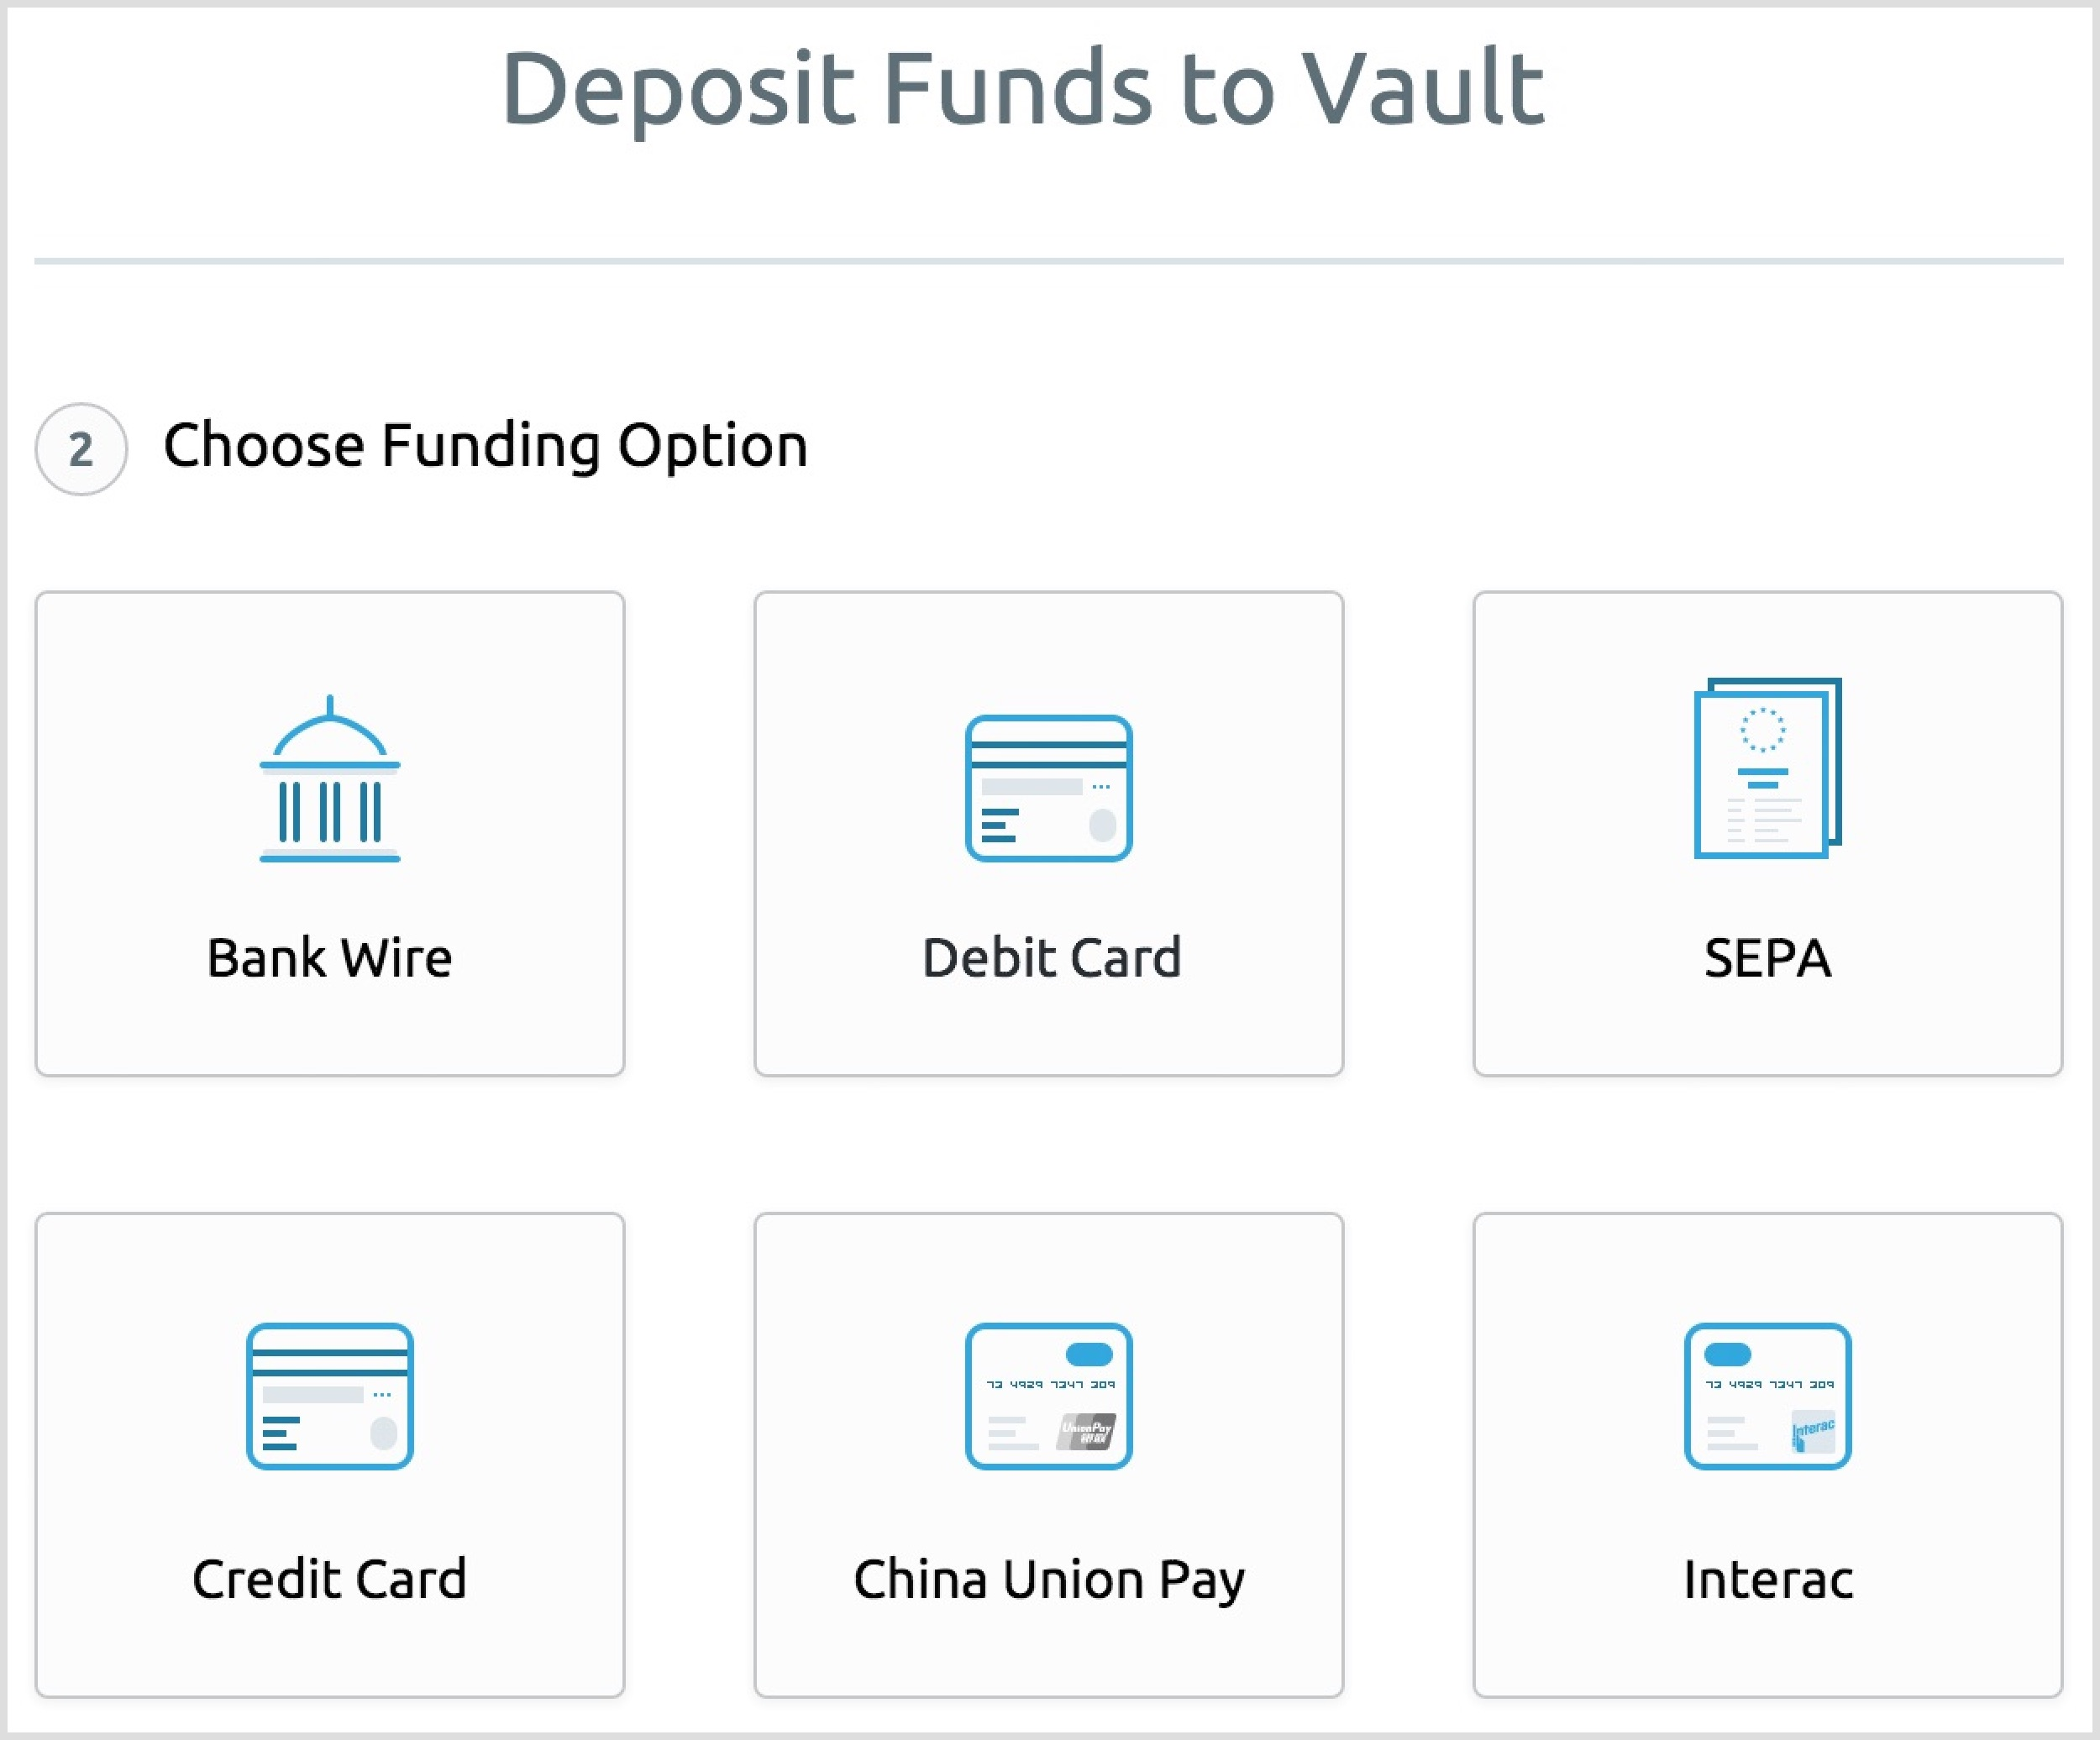 BitGold Deposits Funds to Vault